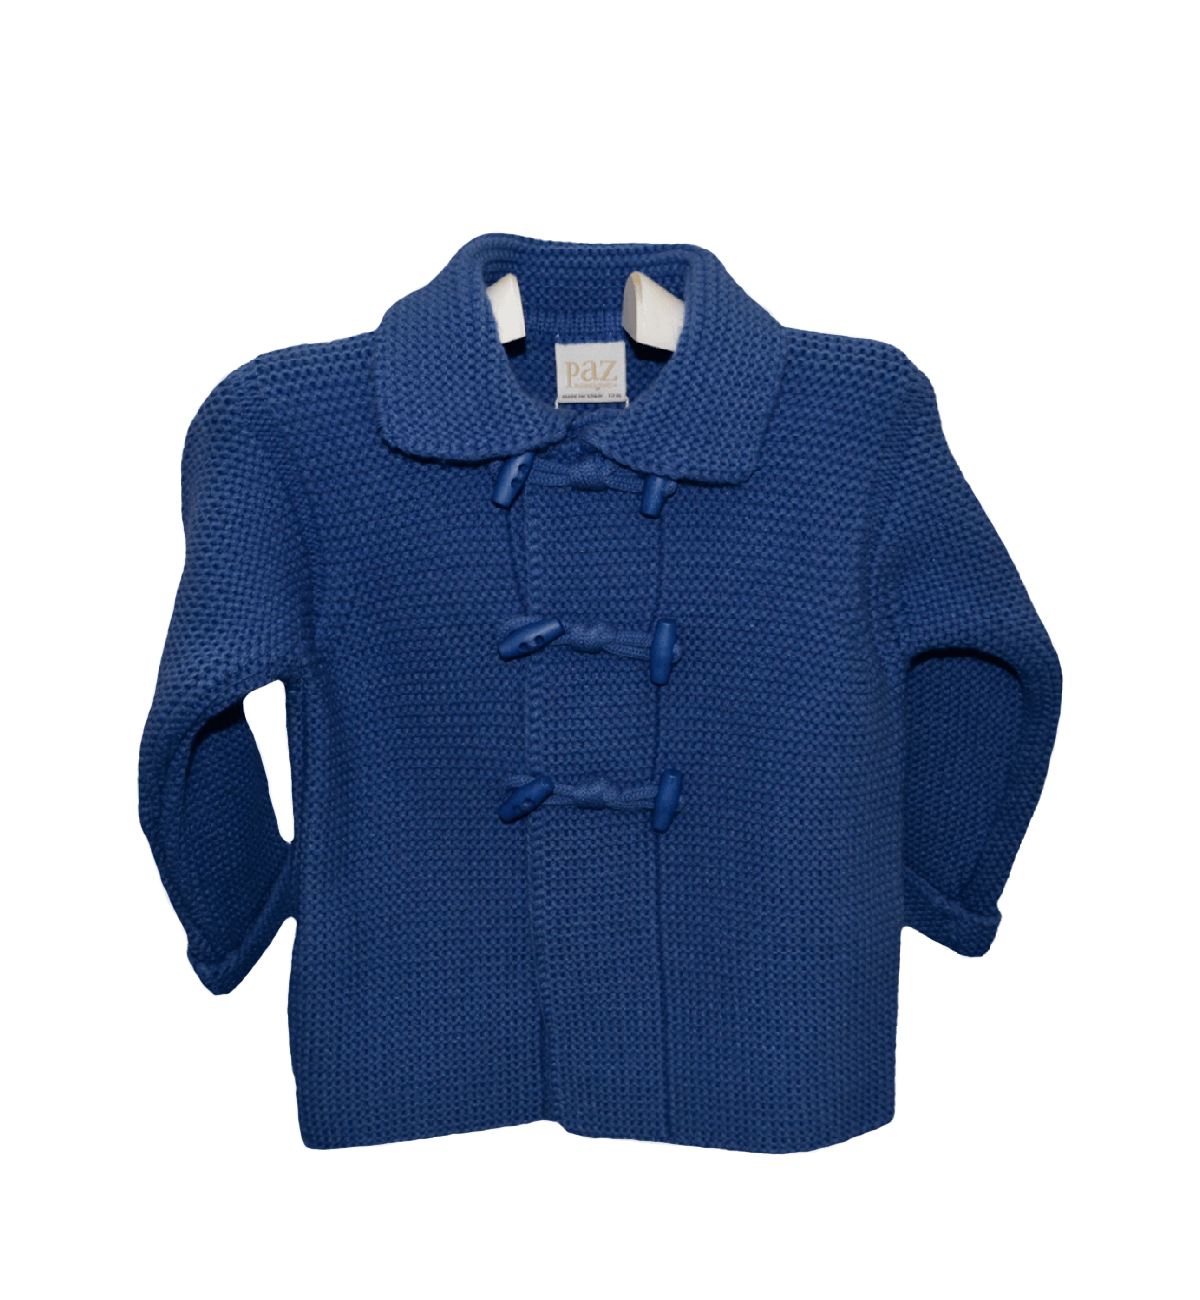 Spanish baby clothes | baby Cardigan & Coat | Knitted duffle jacket |babymaC  - 1